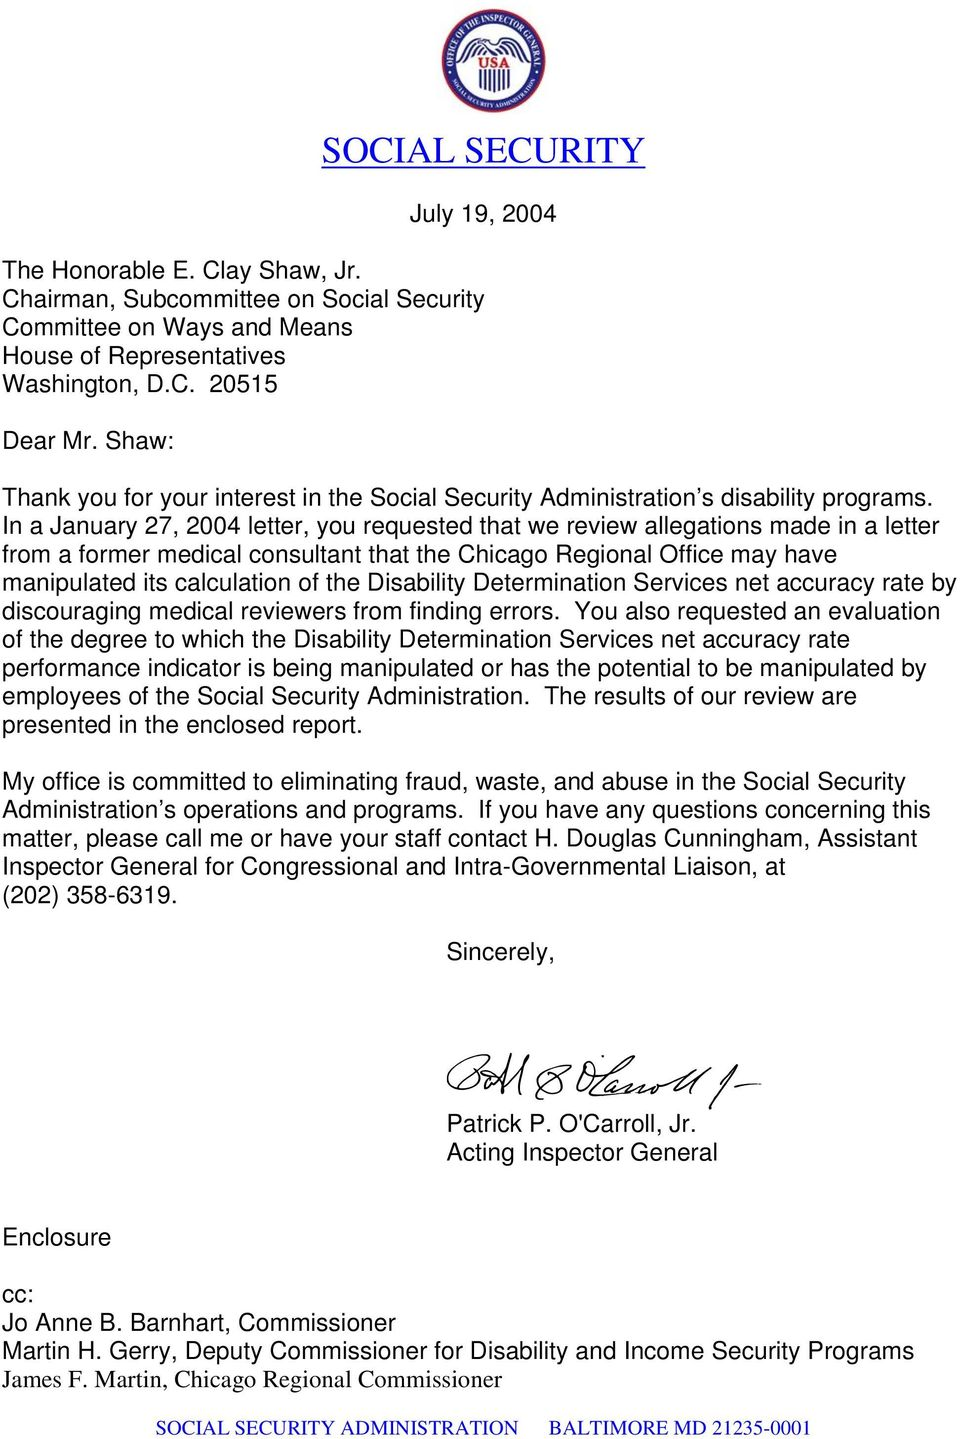 In a January 27, 2004 letter, you requested that we review allegations made in a letter from a former medical consultant that the Chicago Regional Office may have manipulated its calculation of the